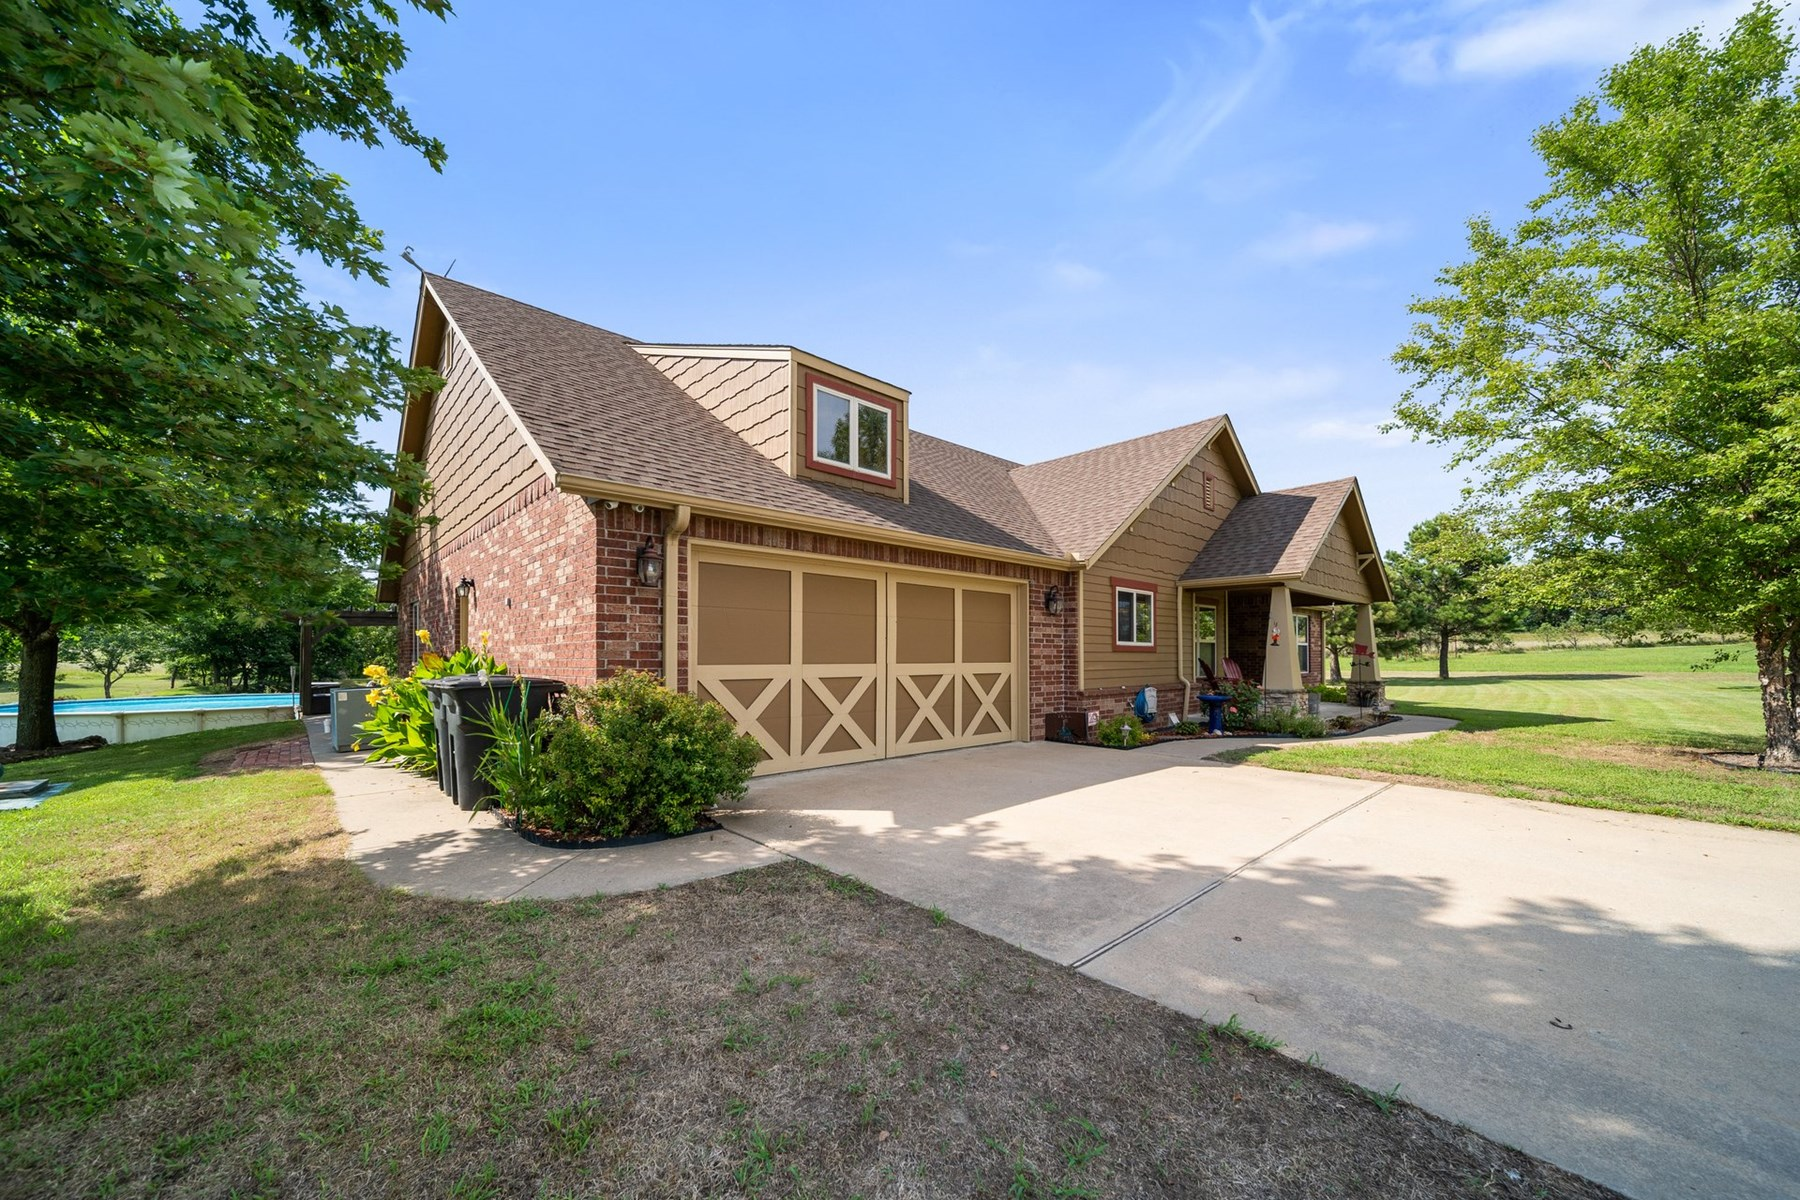 Country Home on 16 +/- Acres for Sale in Claremore, Oklahoma